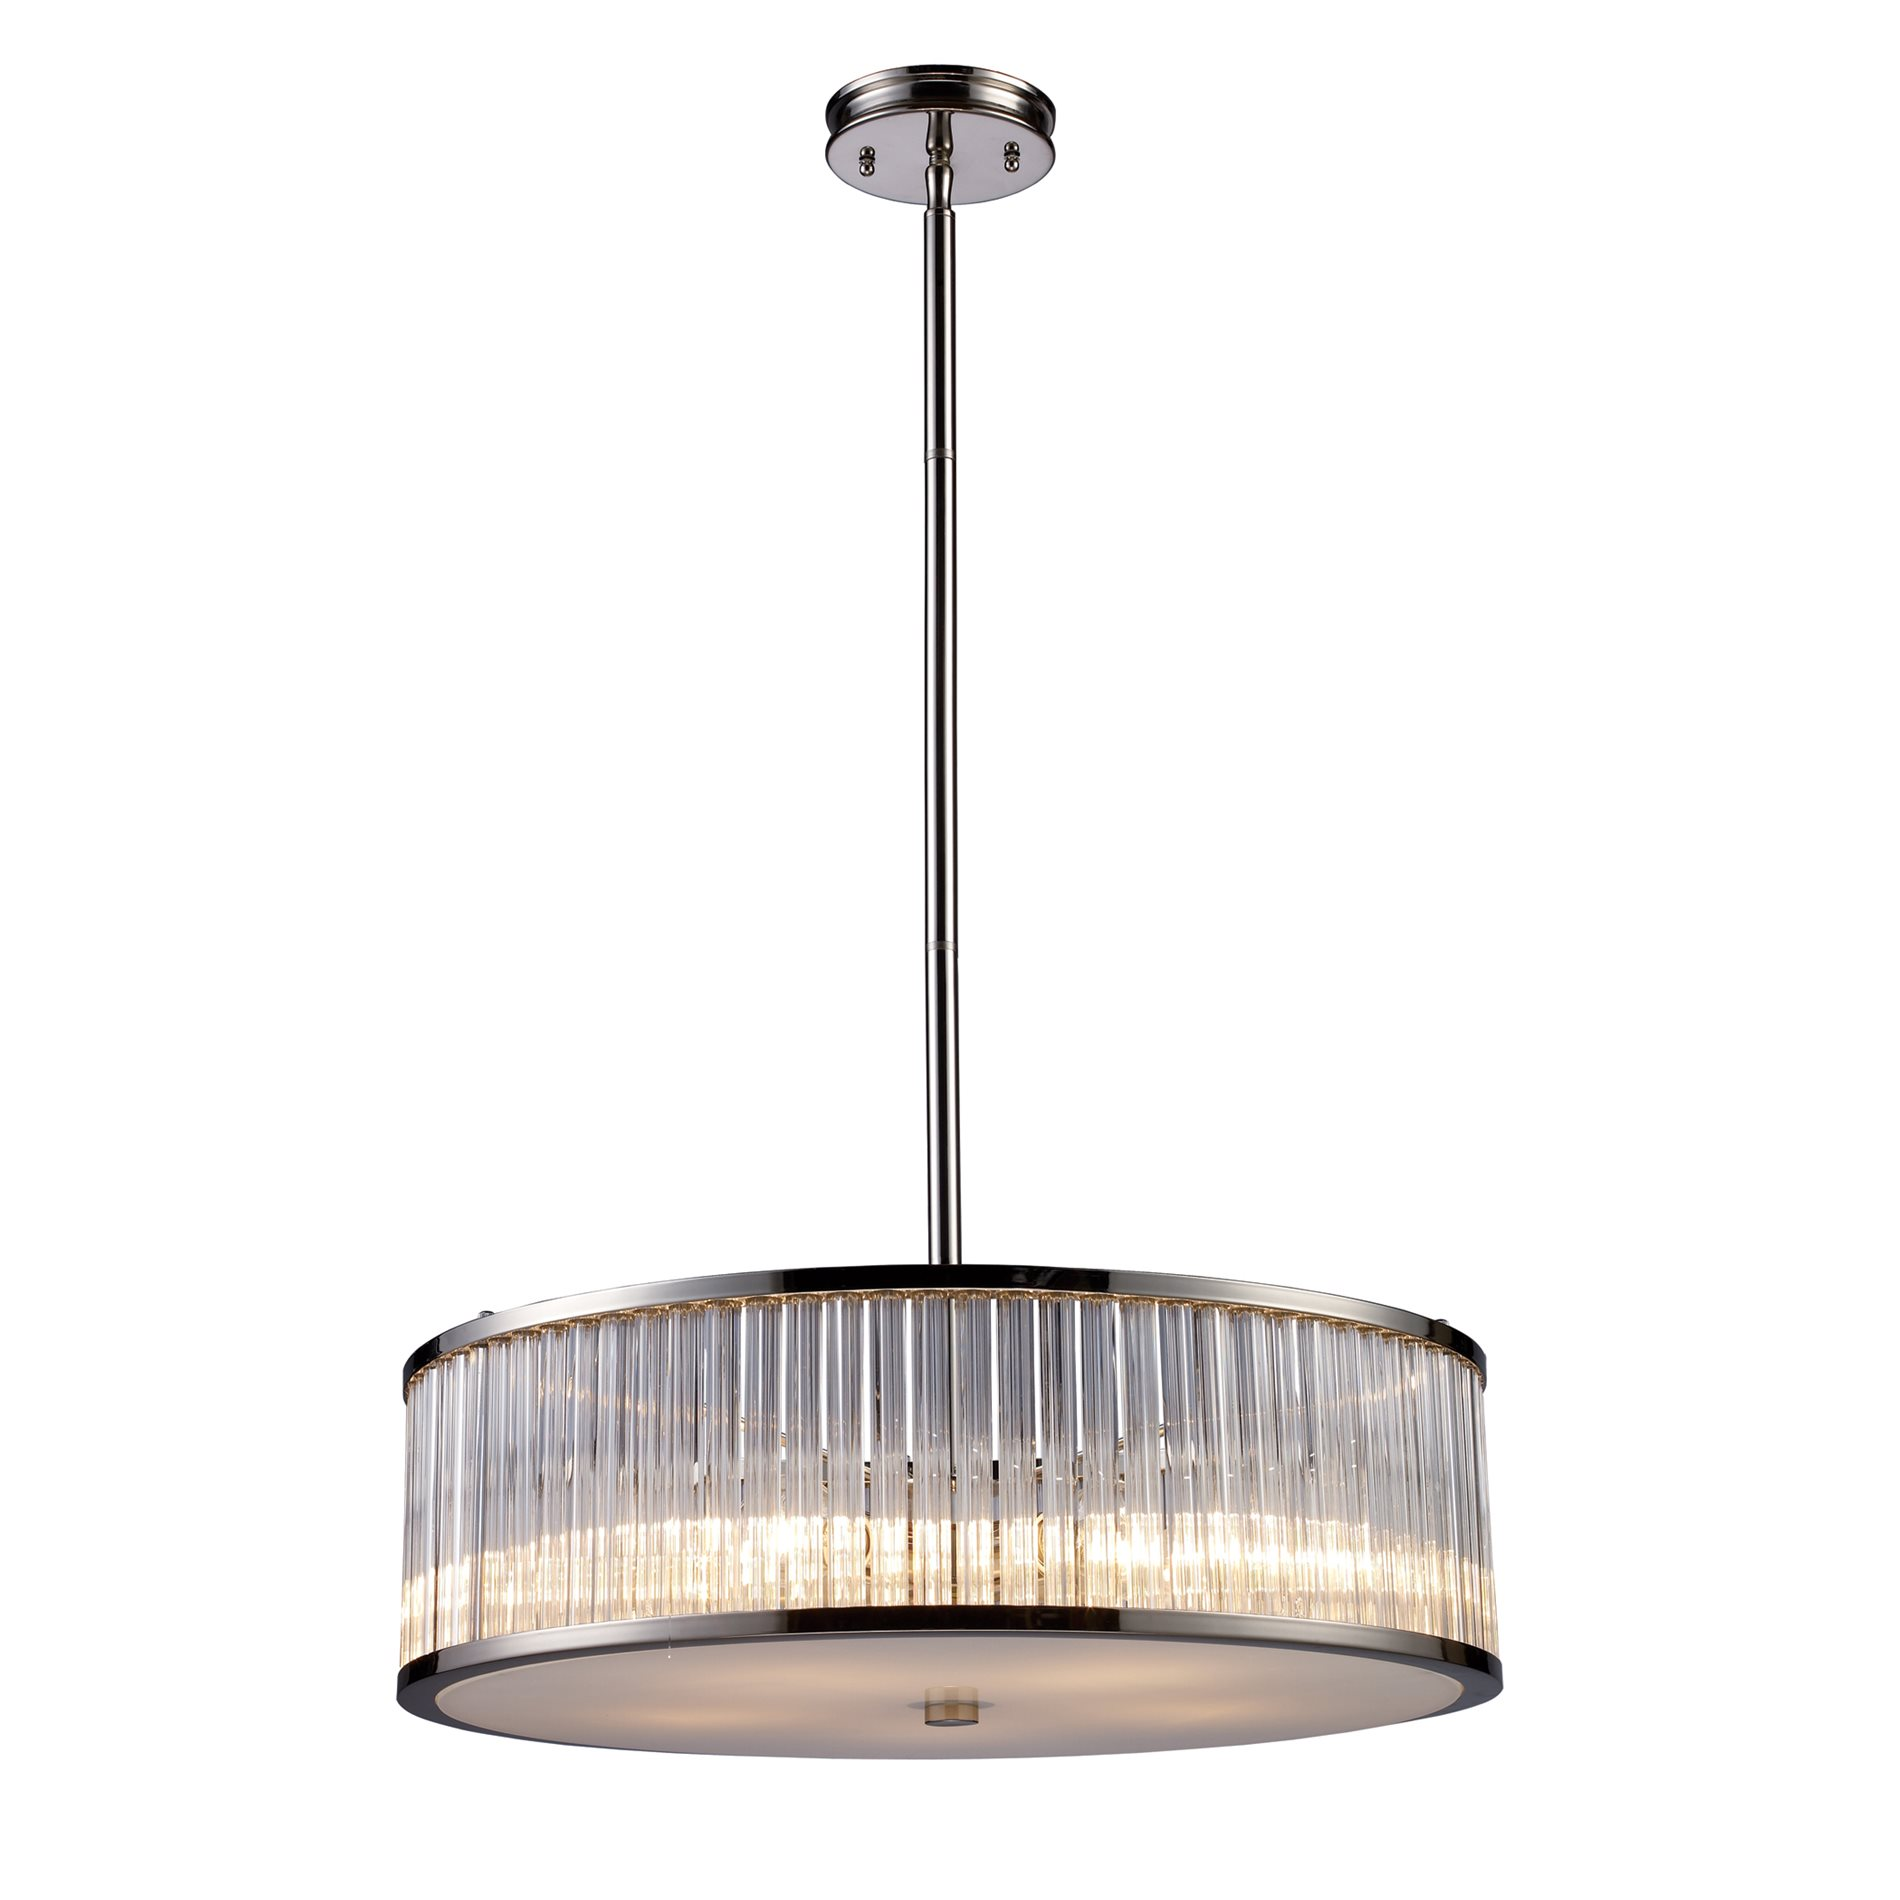 Modern Drum Ceiling Lights : Elk lighting braxton contemporary drum pendant